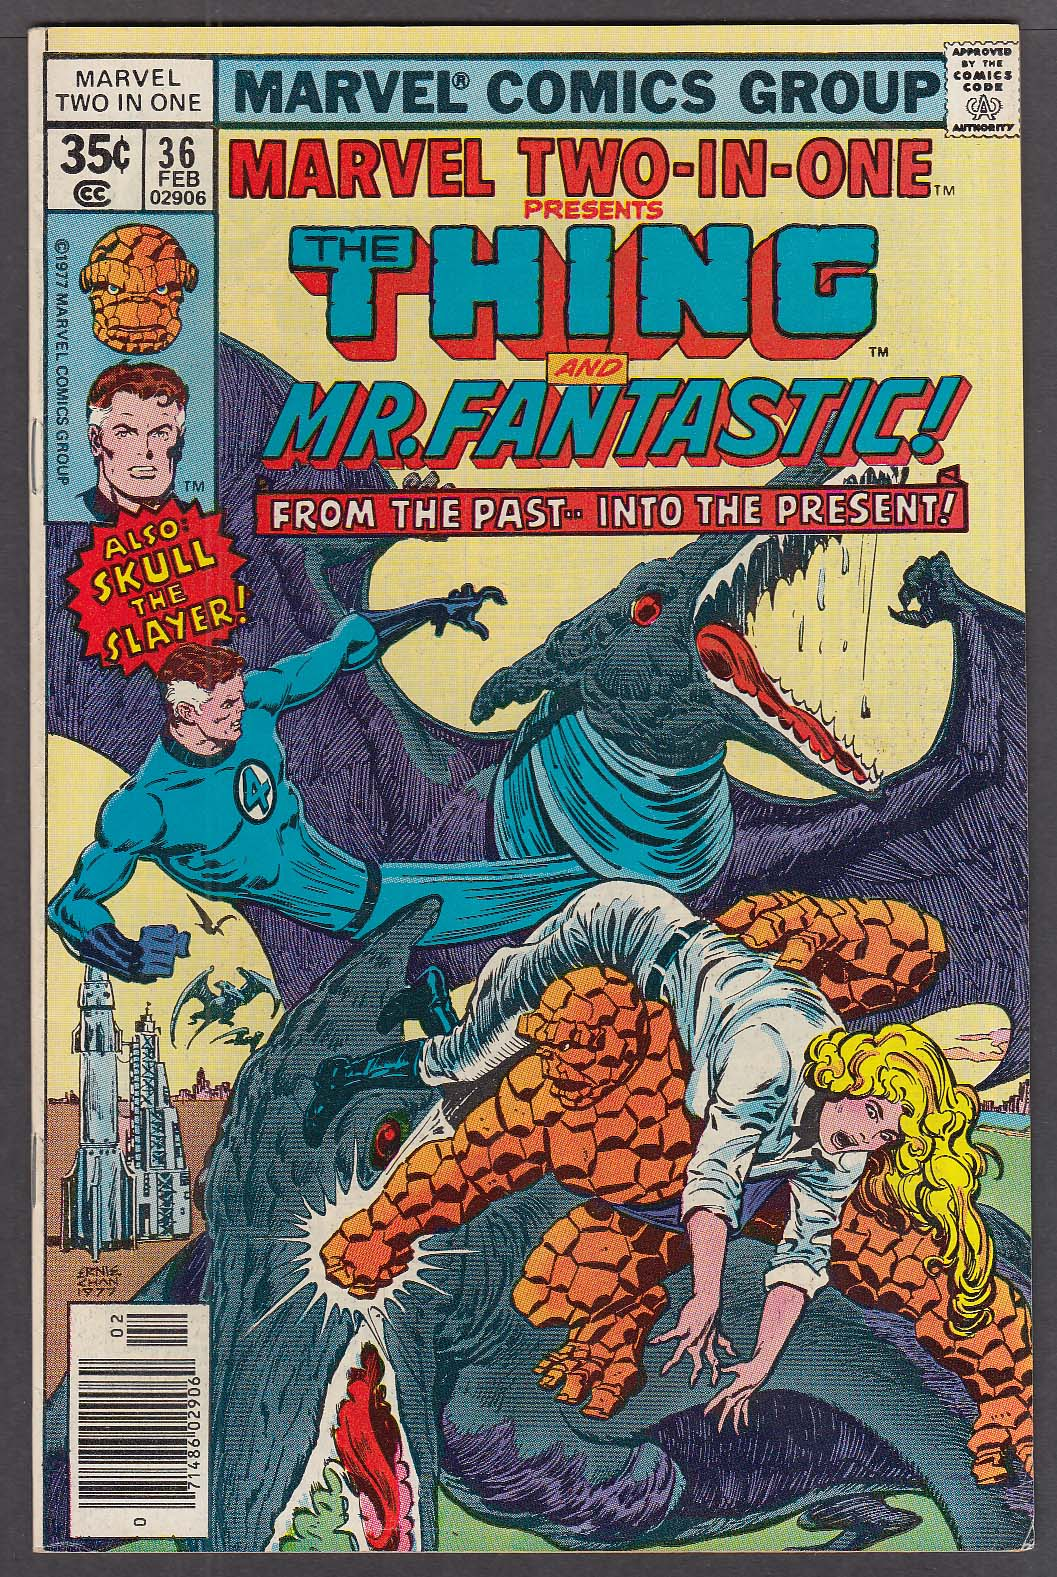 MARVEL TWO-IN-ONE #36 The Thing Mr Fantastic comic book 2 1978